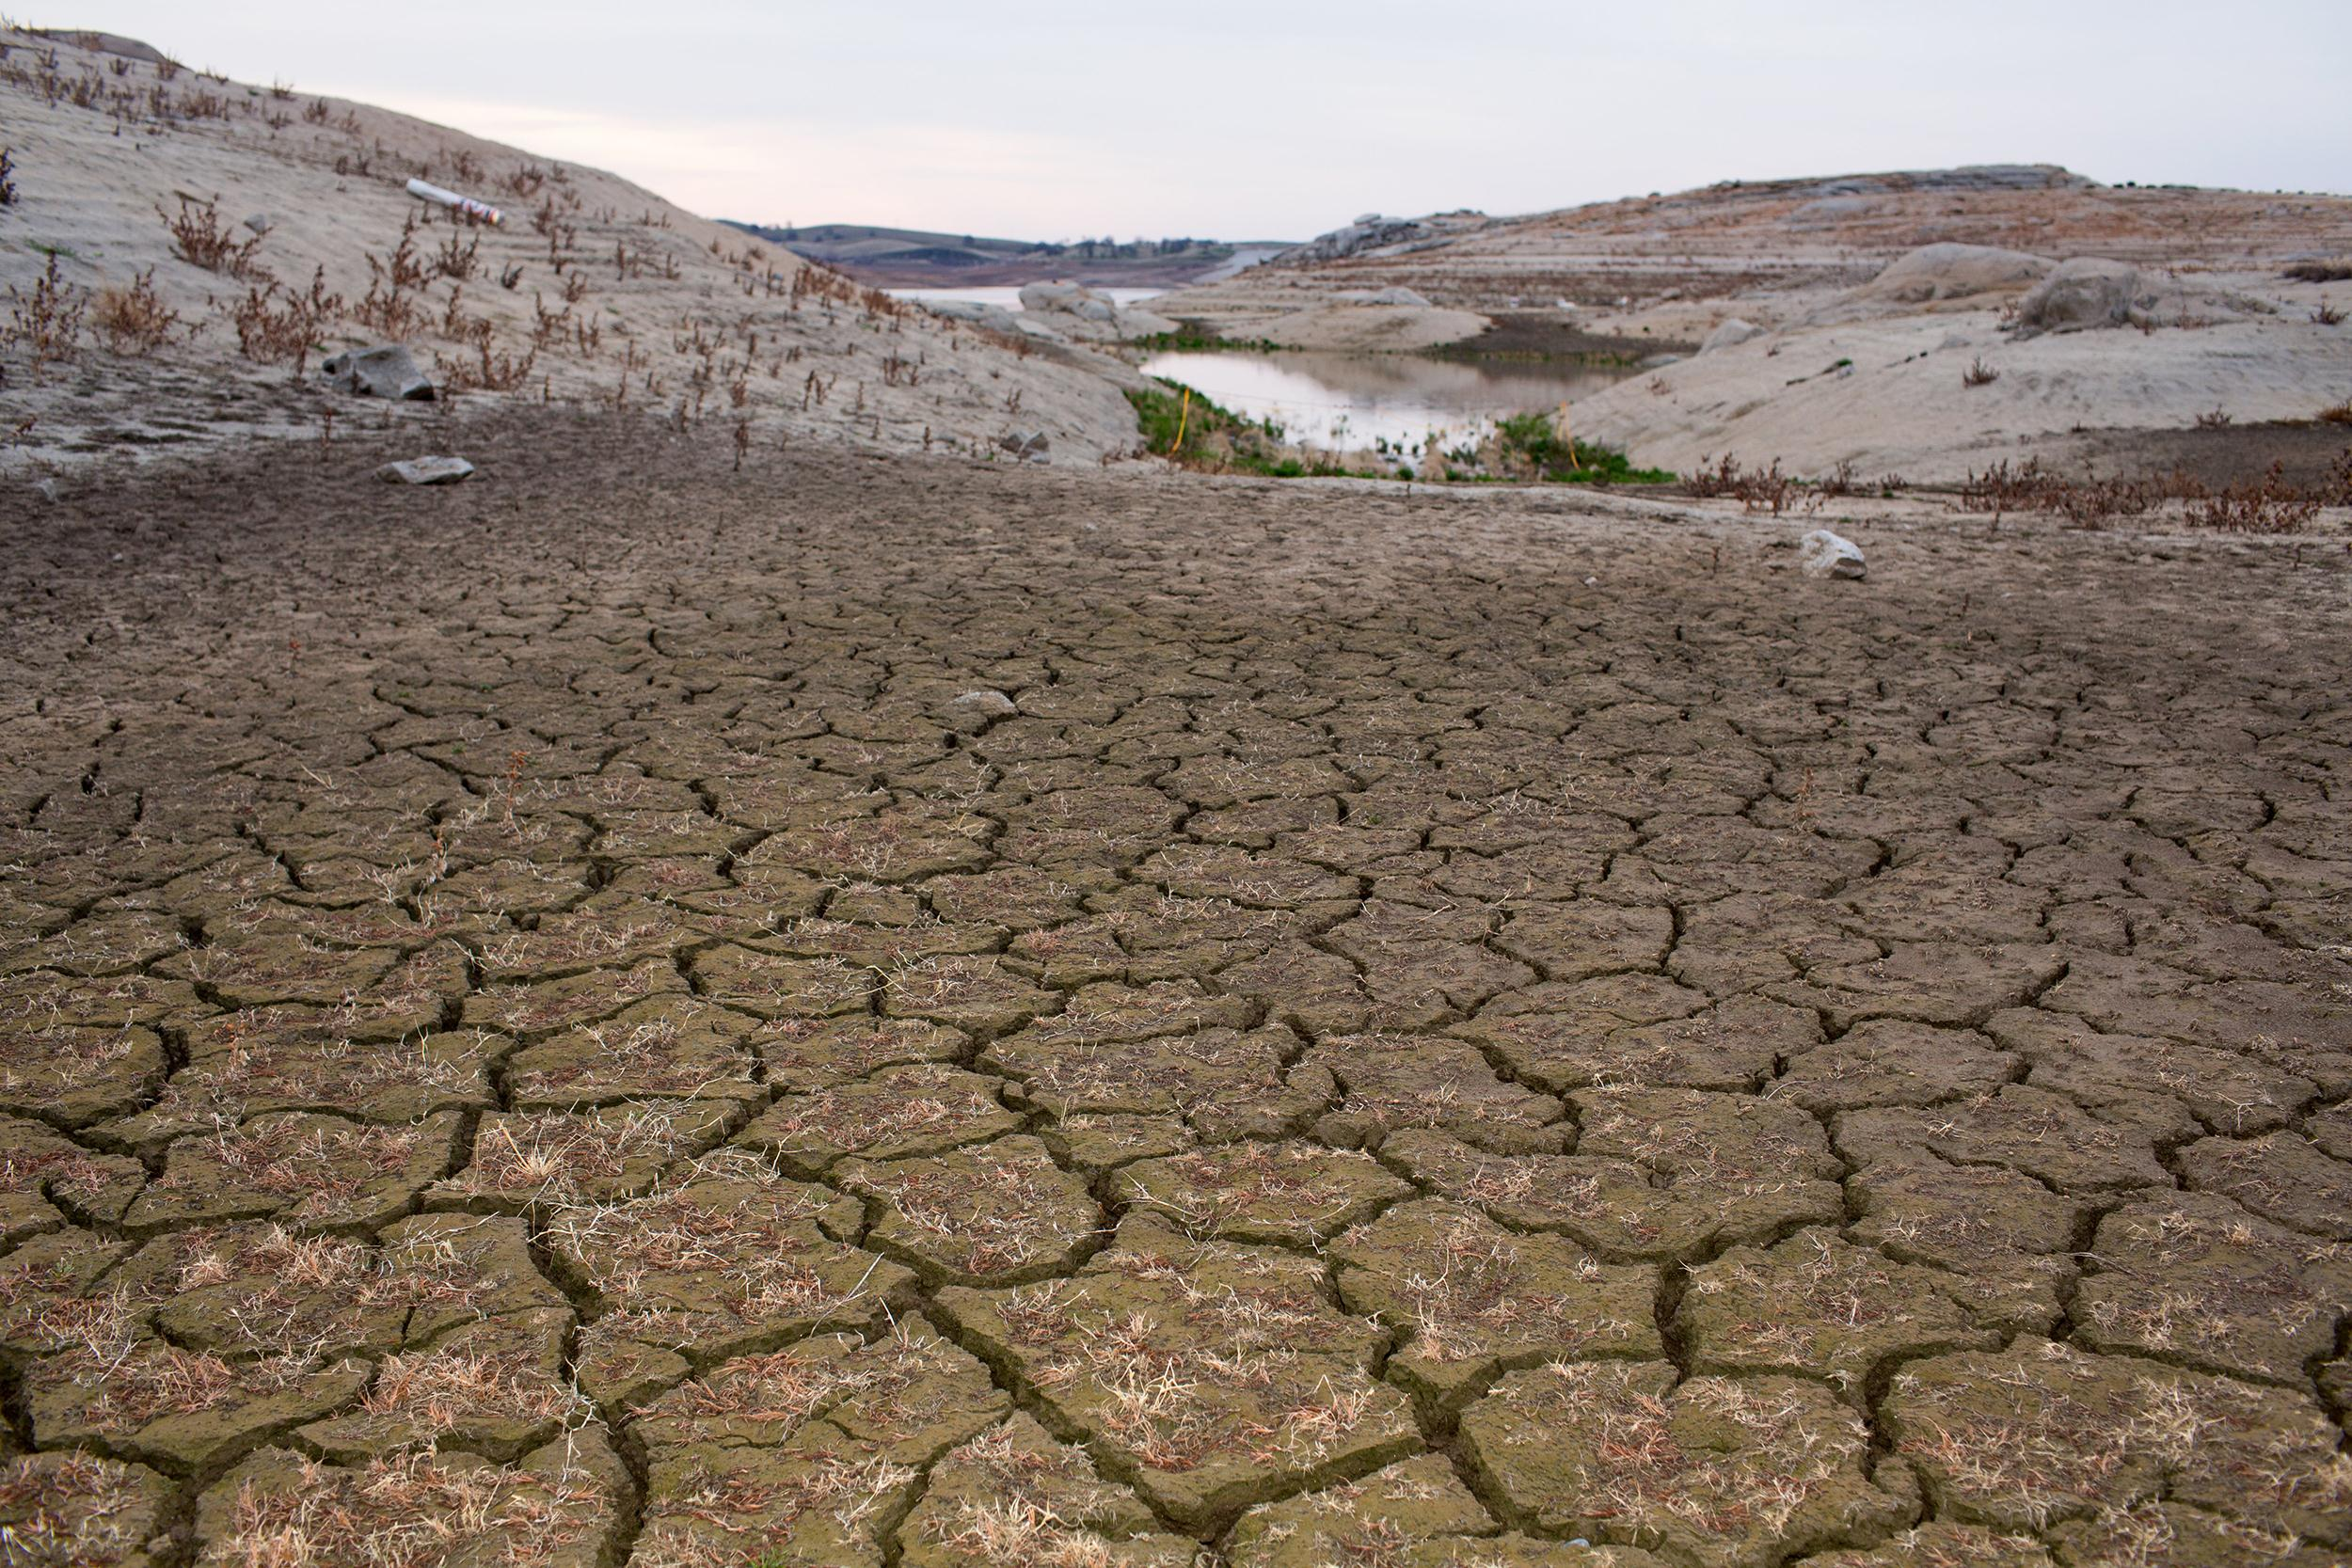 Image: Dried mud sits at the Hensley Lake reservoir near Madera, Calif. on Feb 15